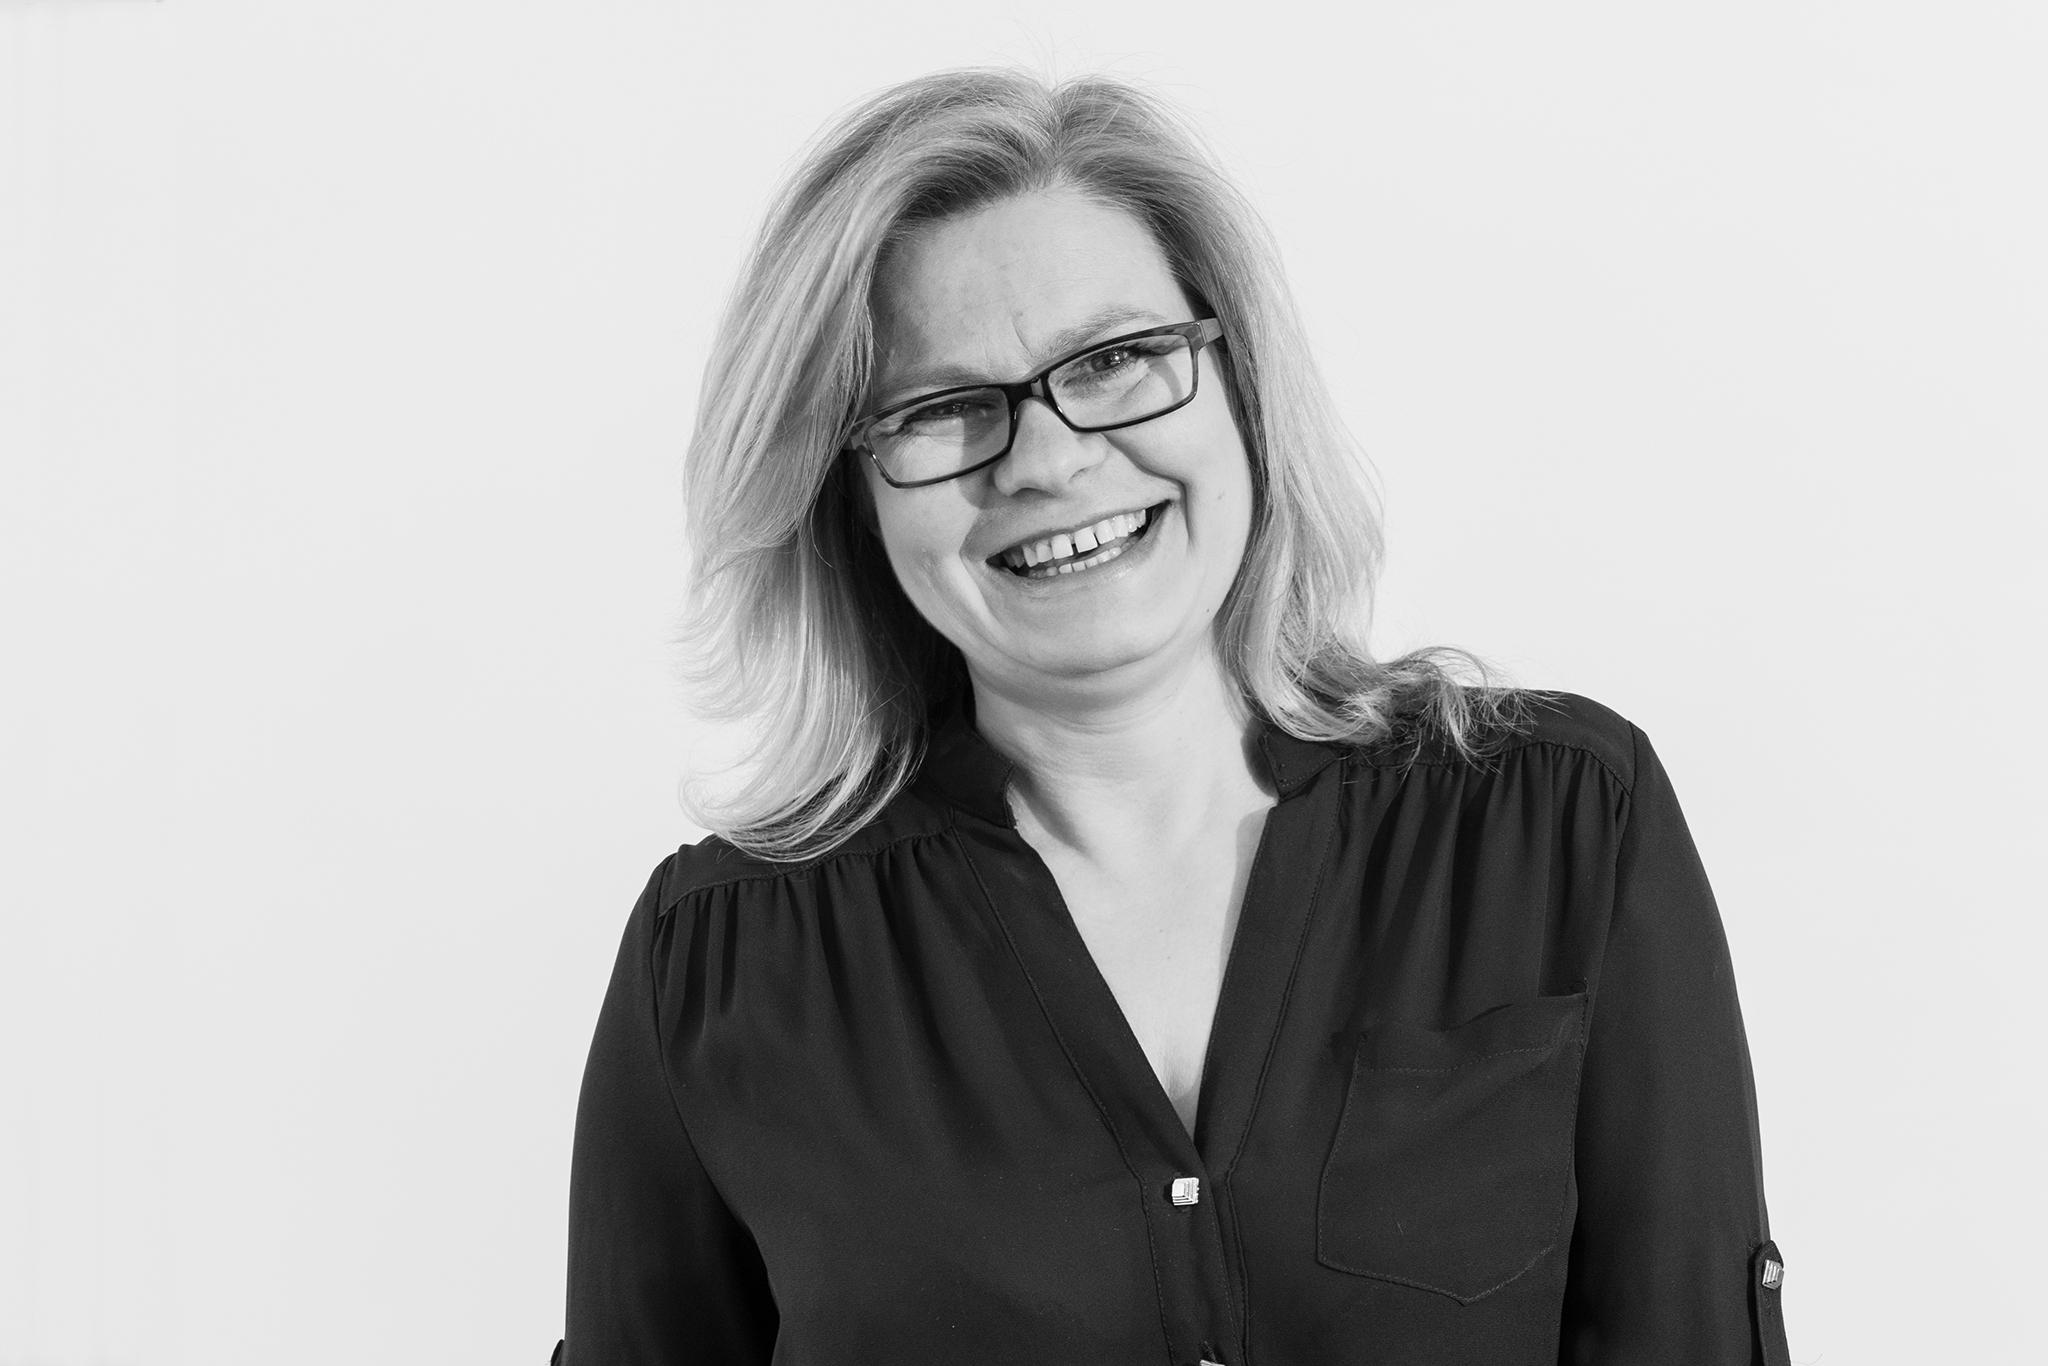 Svetla Simidchieva - LinkedInSvetla builds AI for Talent Acquisition. With some 20 years of experience in talent management, employee engagement and consulting, Svetla is an avid proponent of design thinking for building products and problem solving.